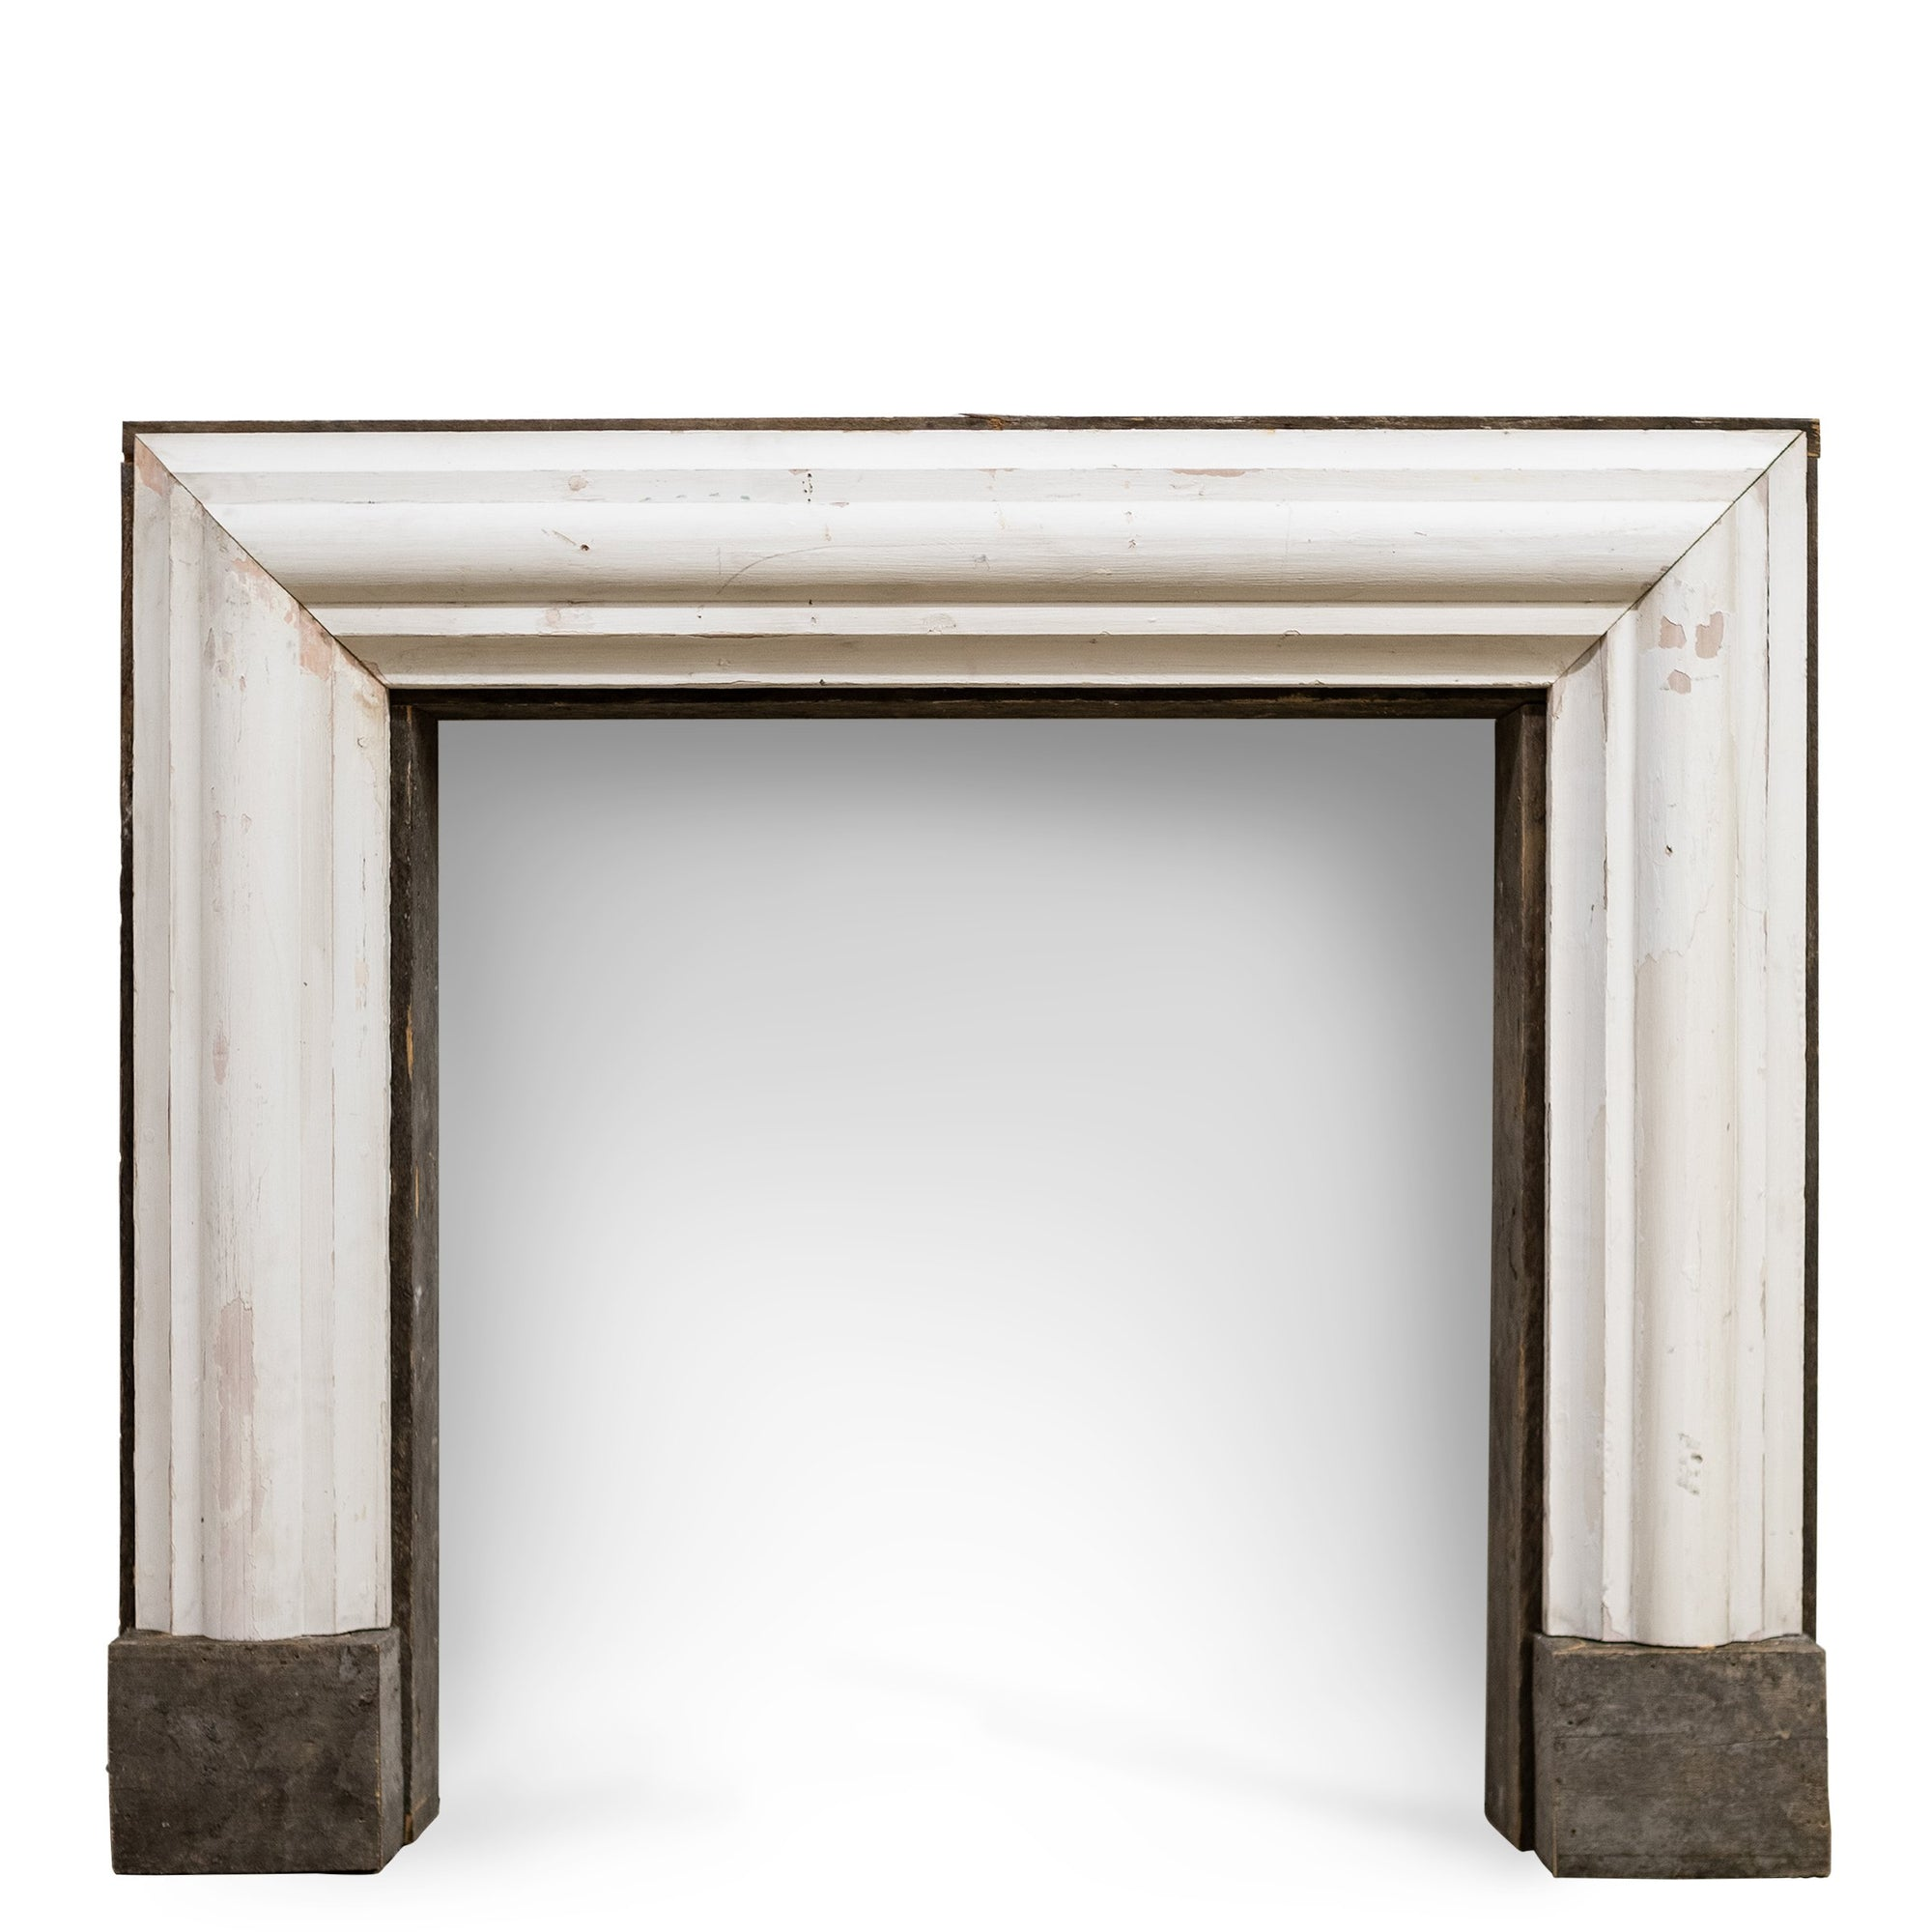 Bolection Fireplace Surround Crafted from Reclaimed Timber